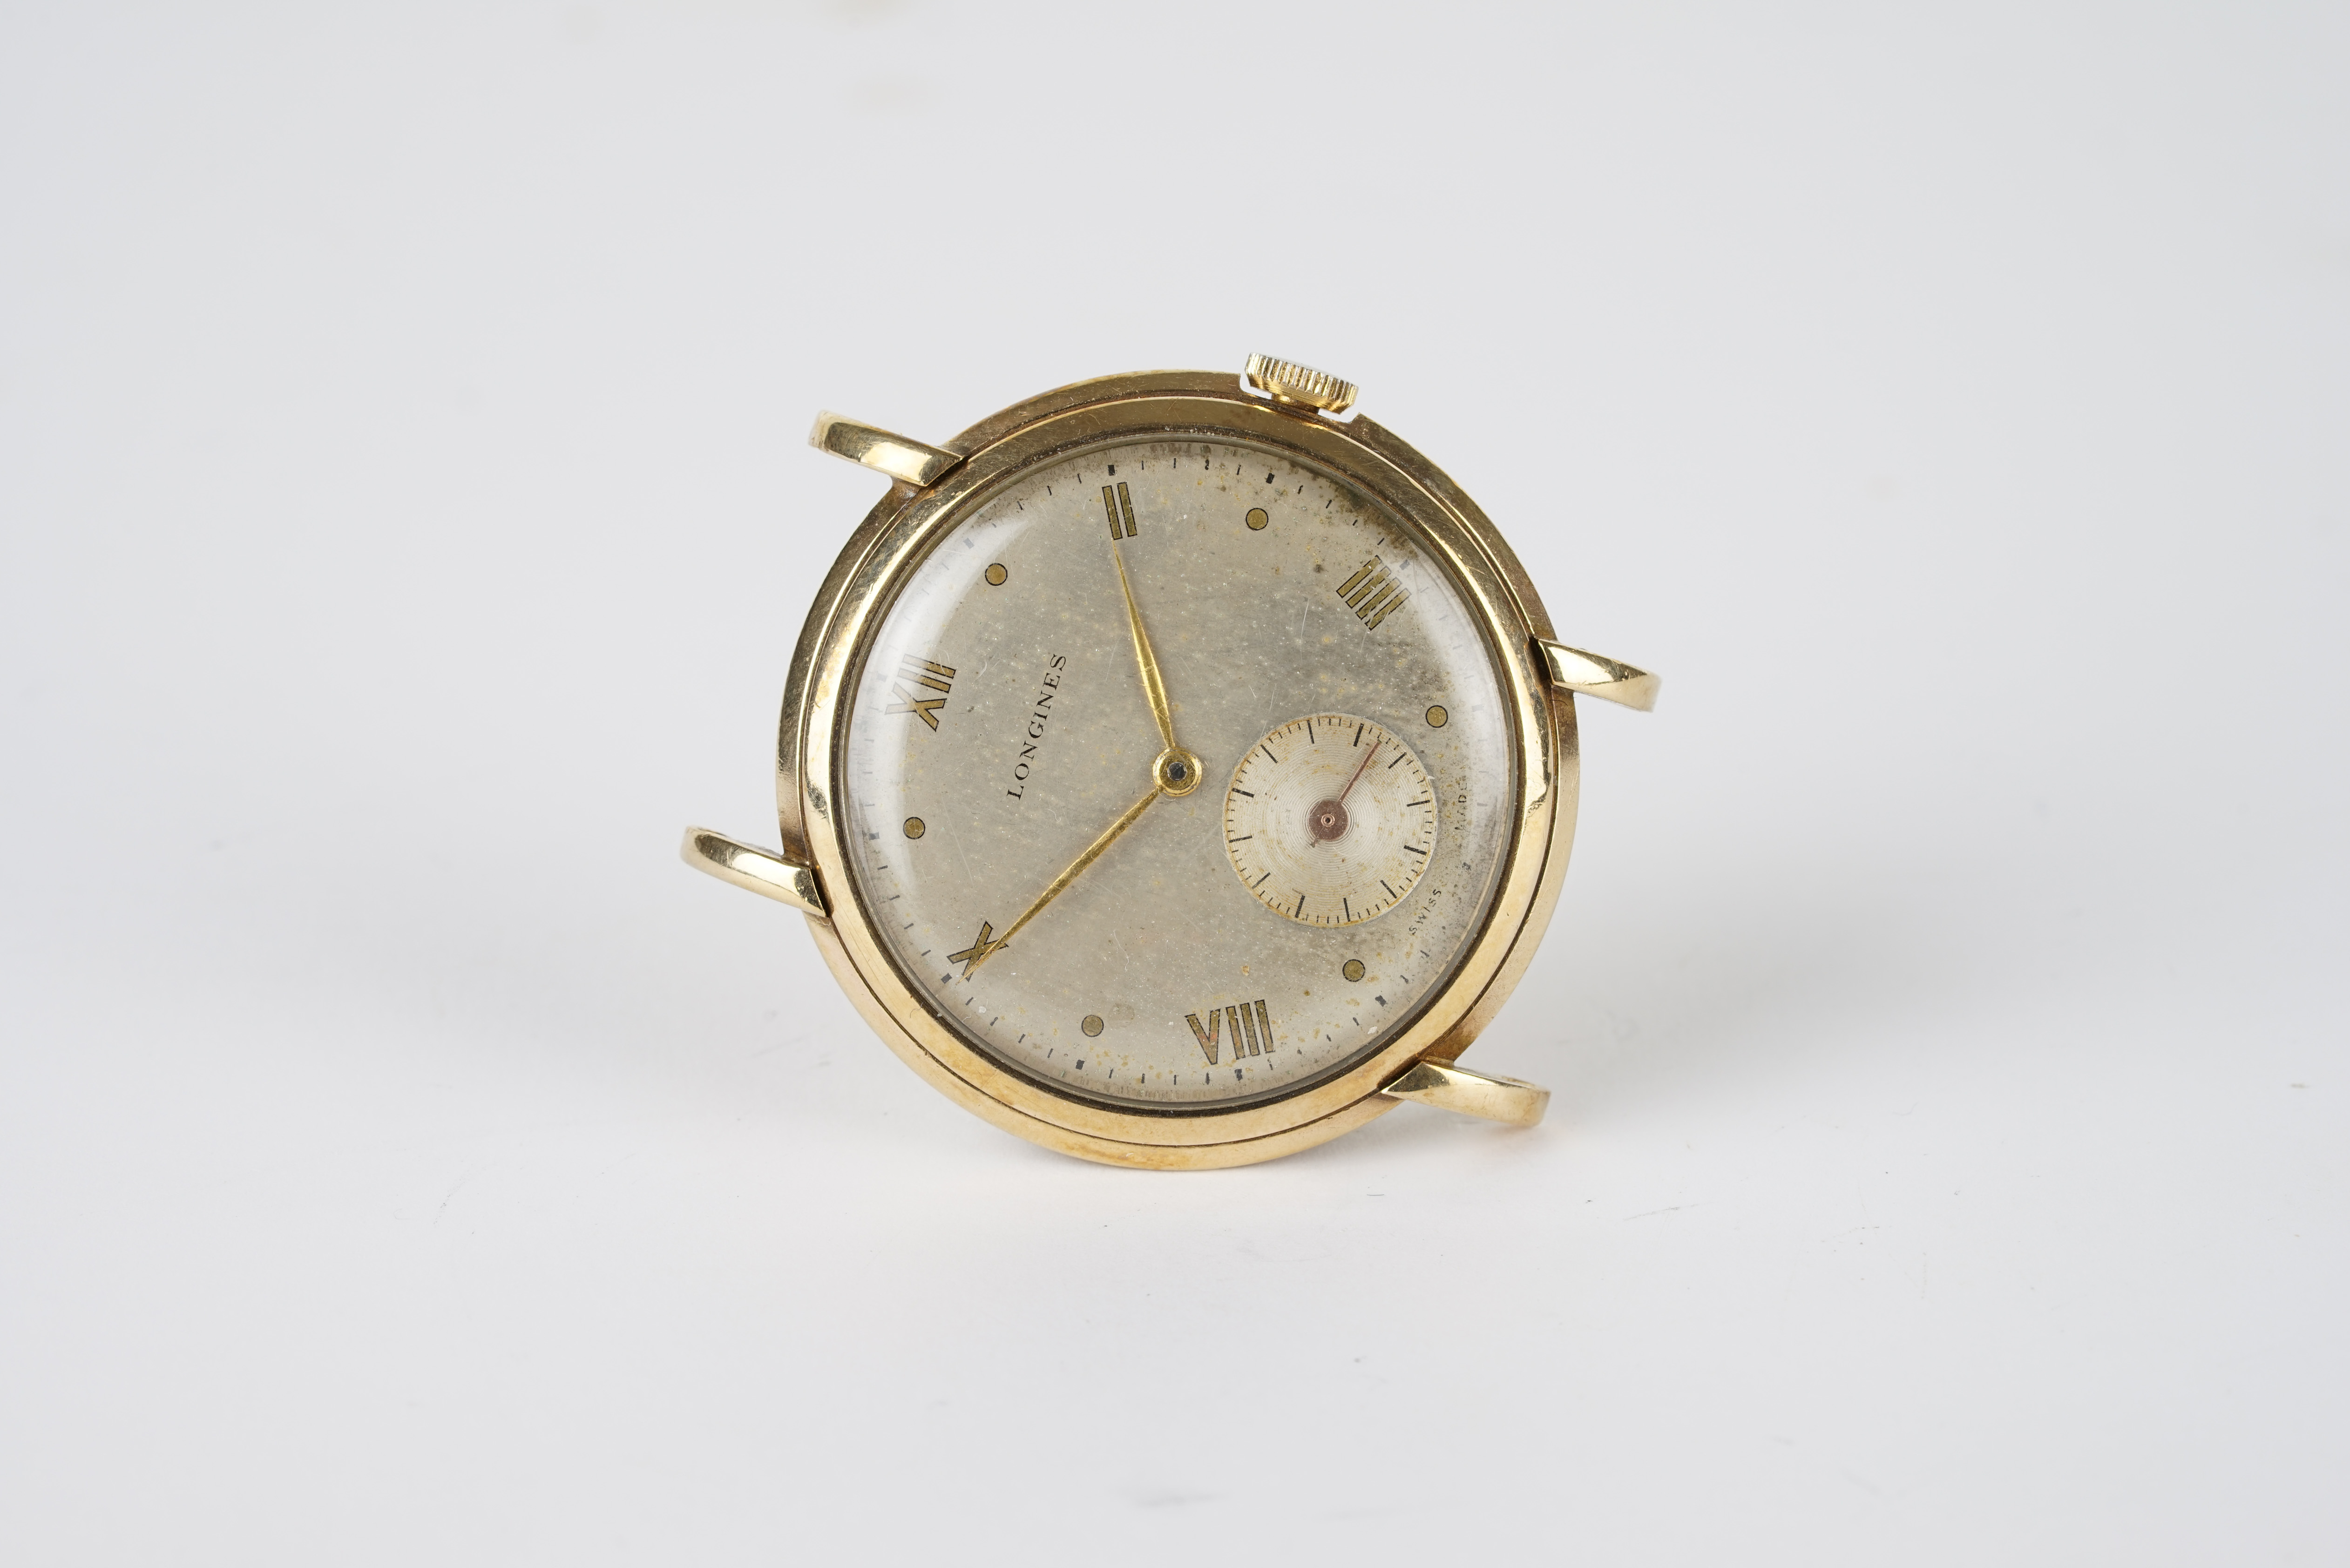 GENTLEMENS LONGINES 9CT GOLD WRISTWATCH, circular silver dial with gilt roman numeral hour markers